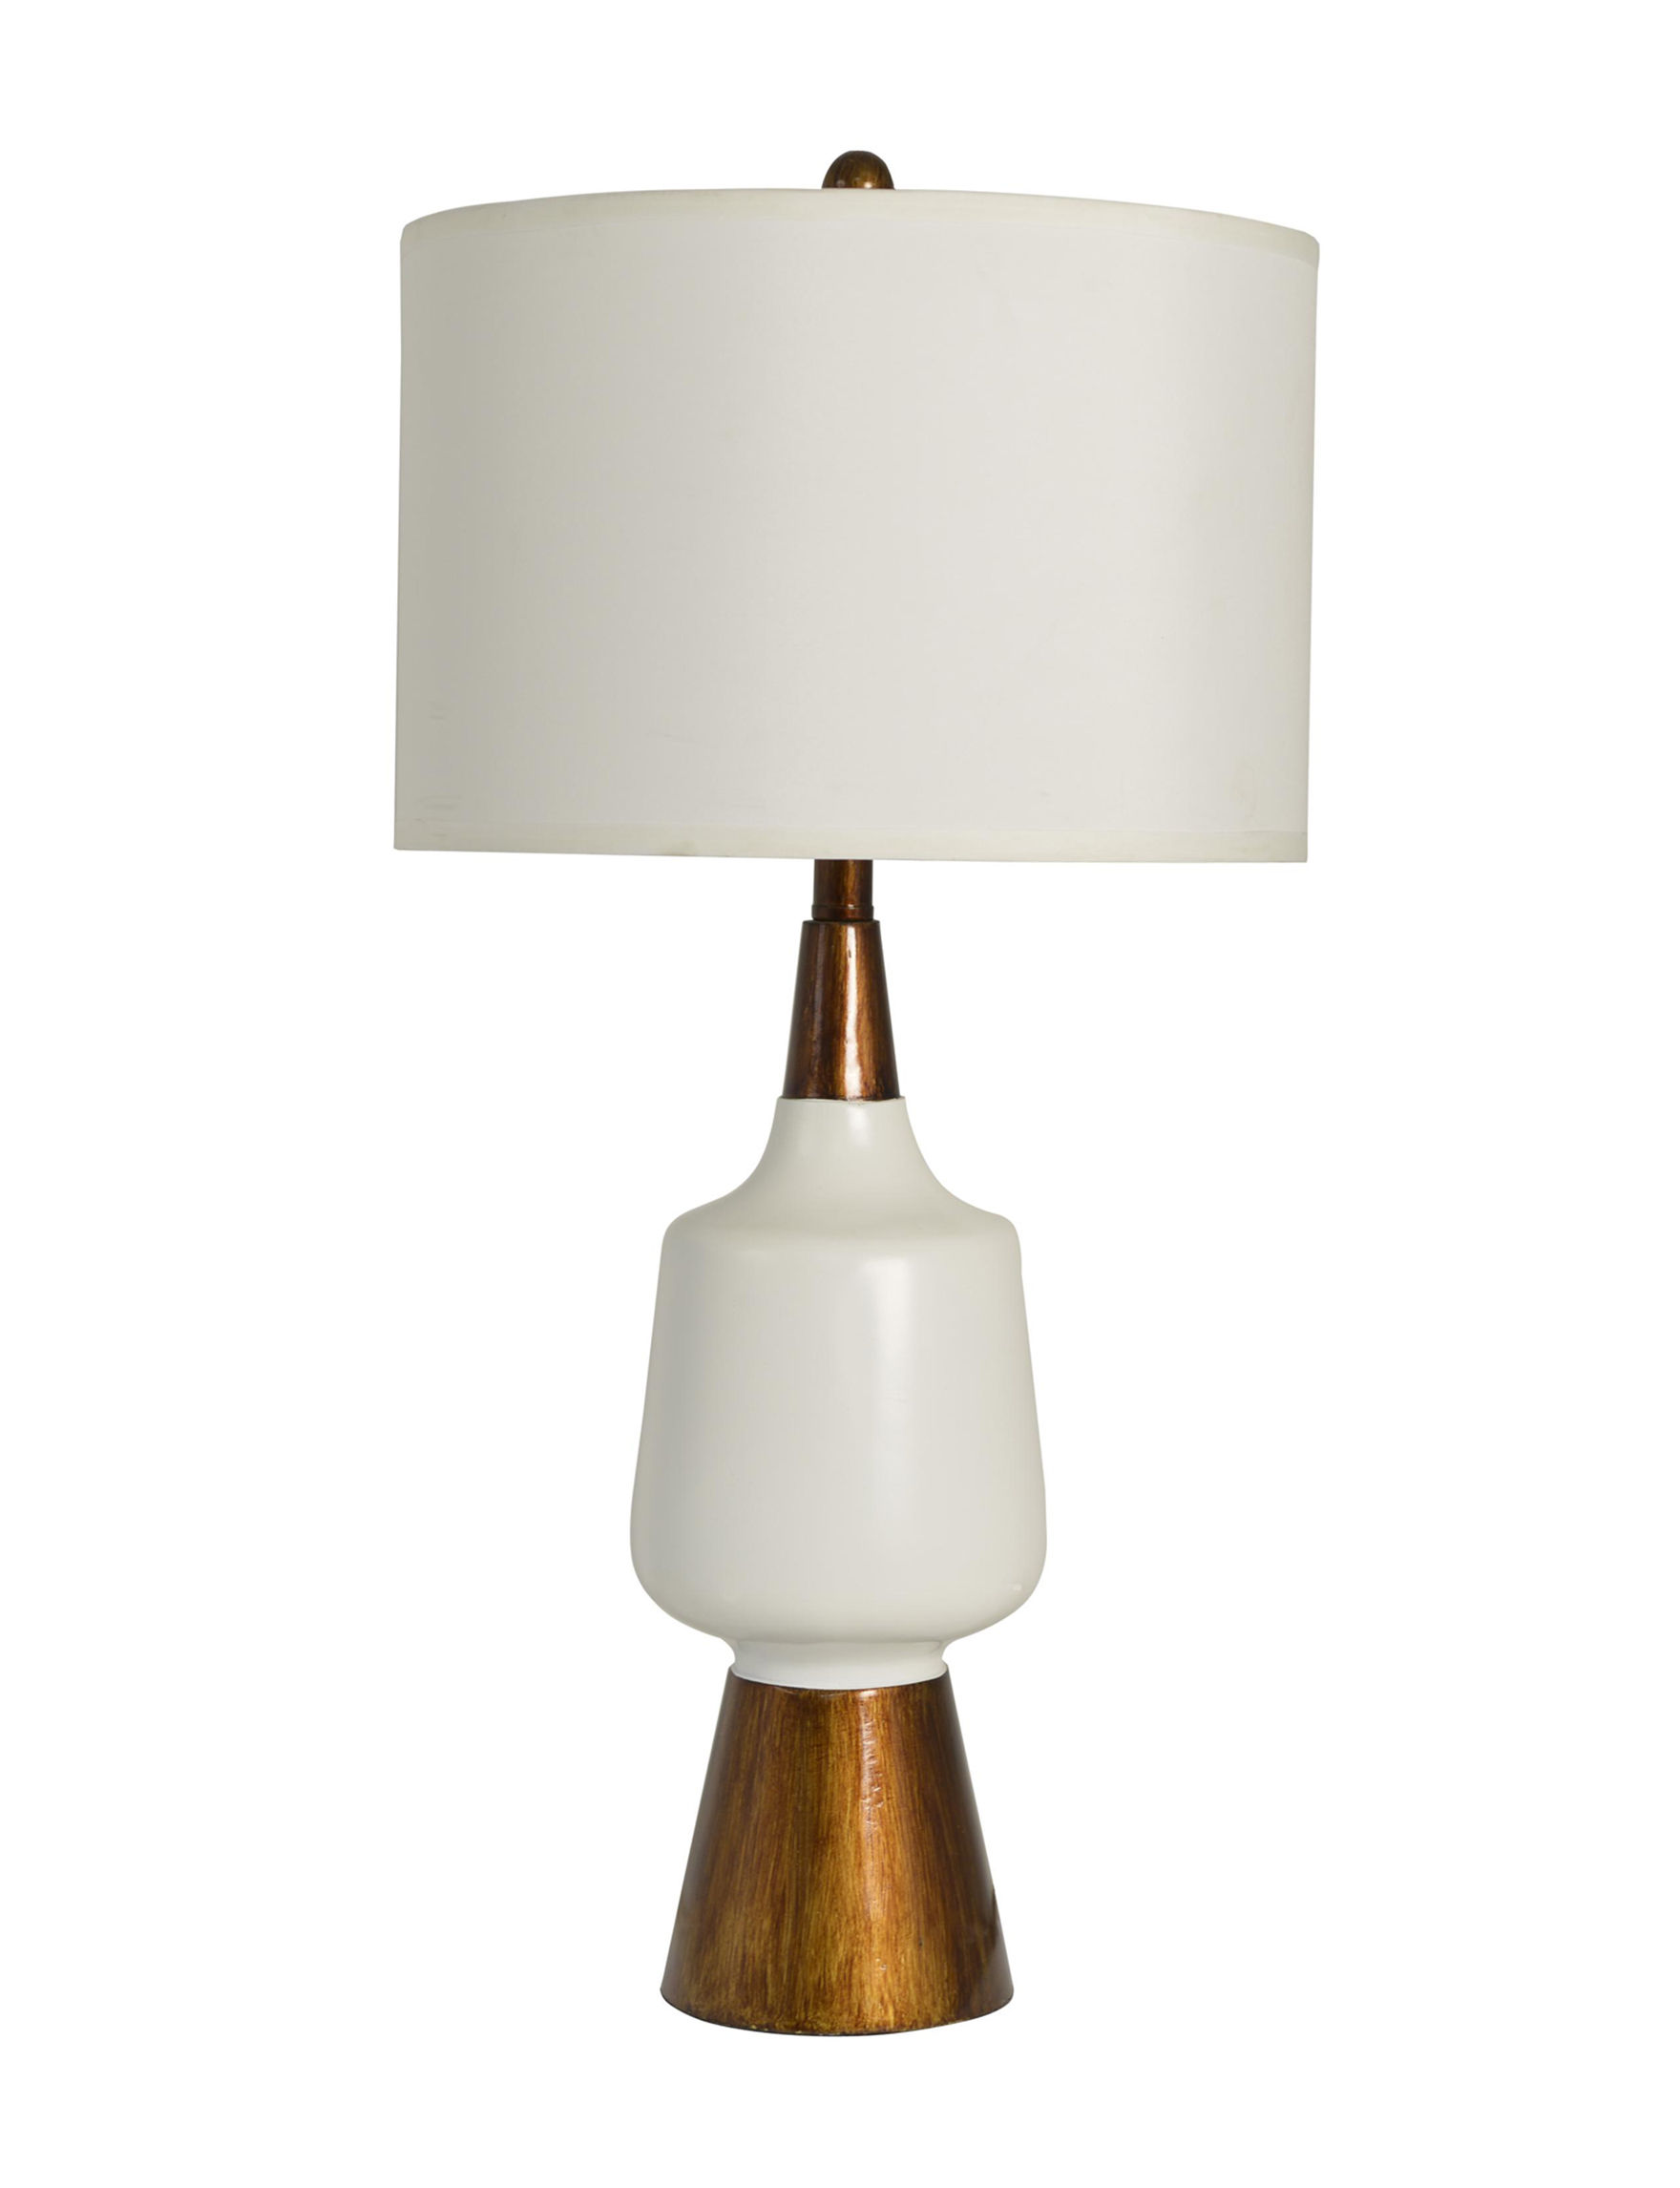 Decor Therapy White / Bronze Table Lamps Lighting & Lamps